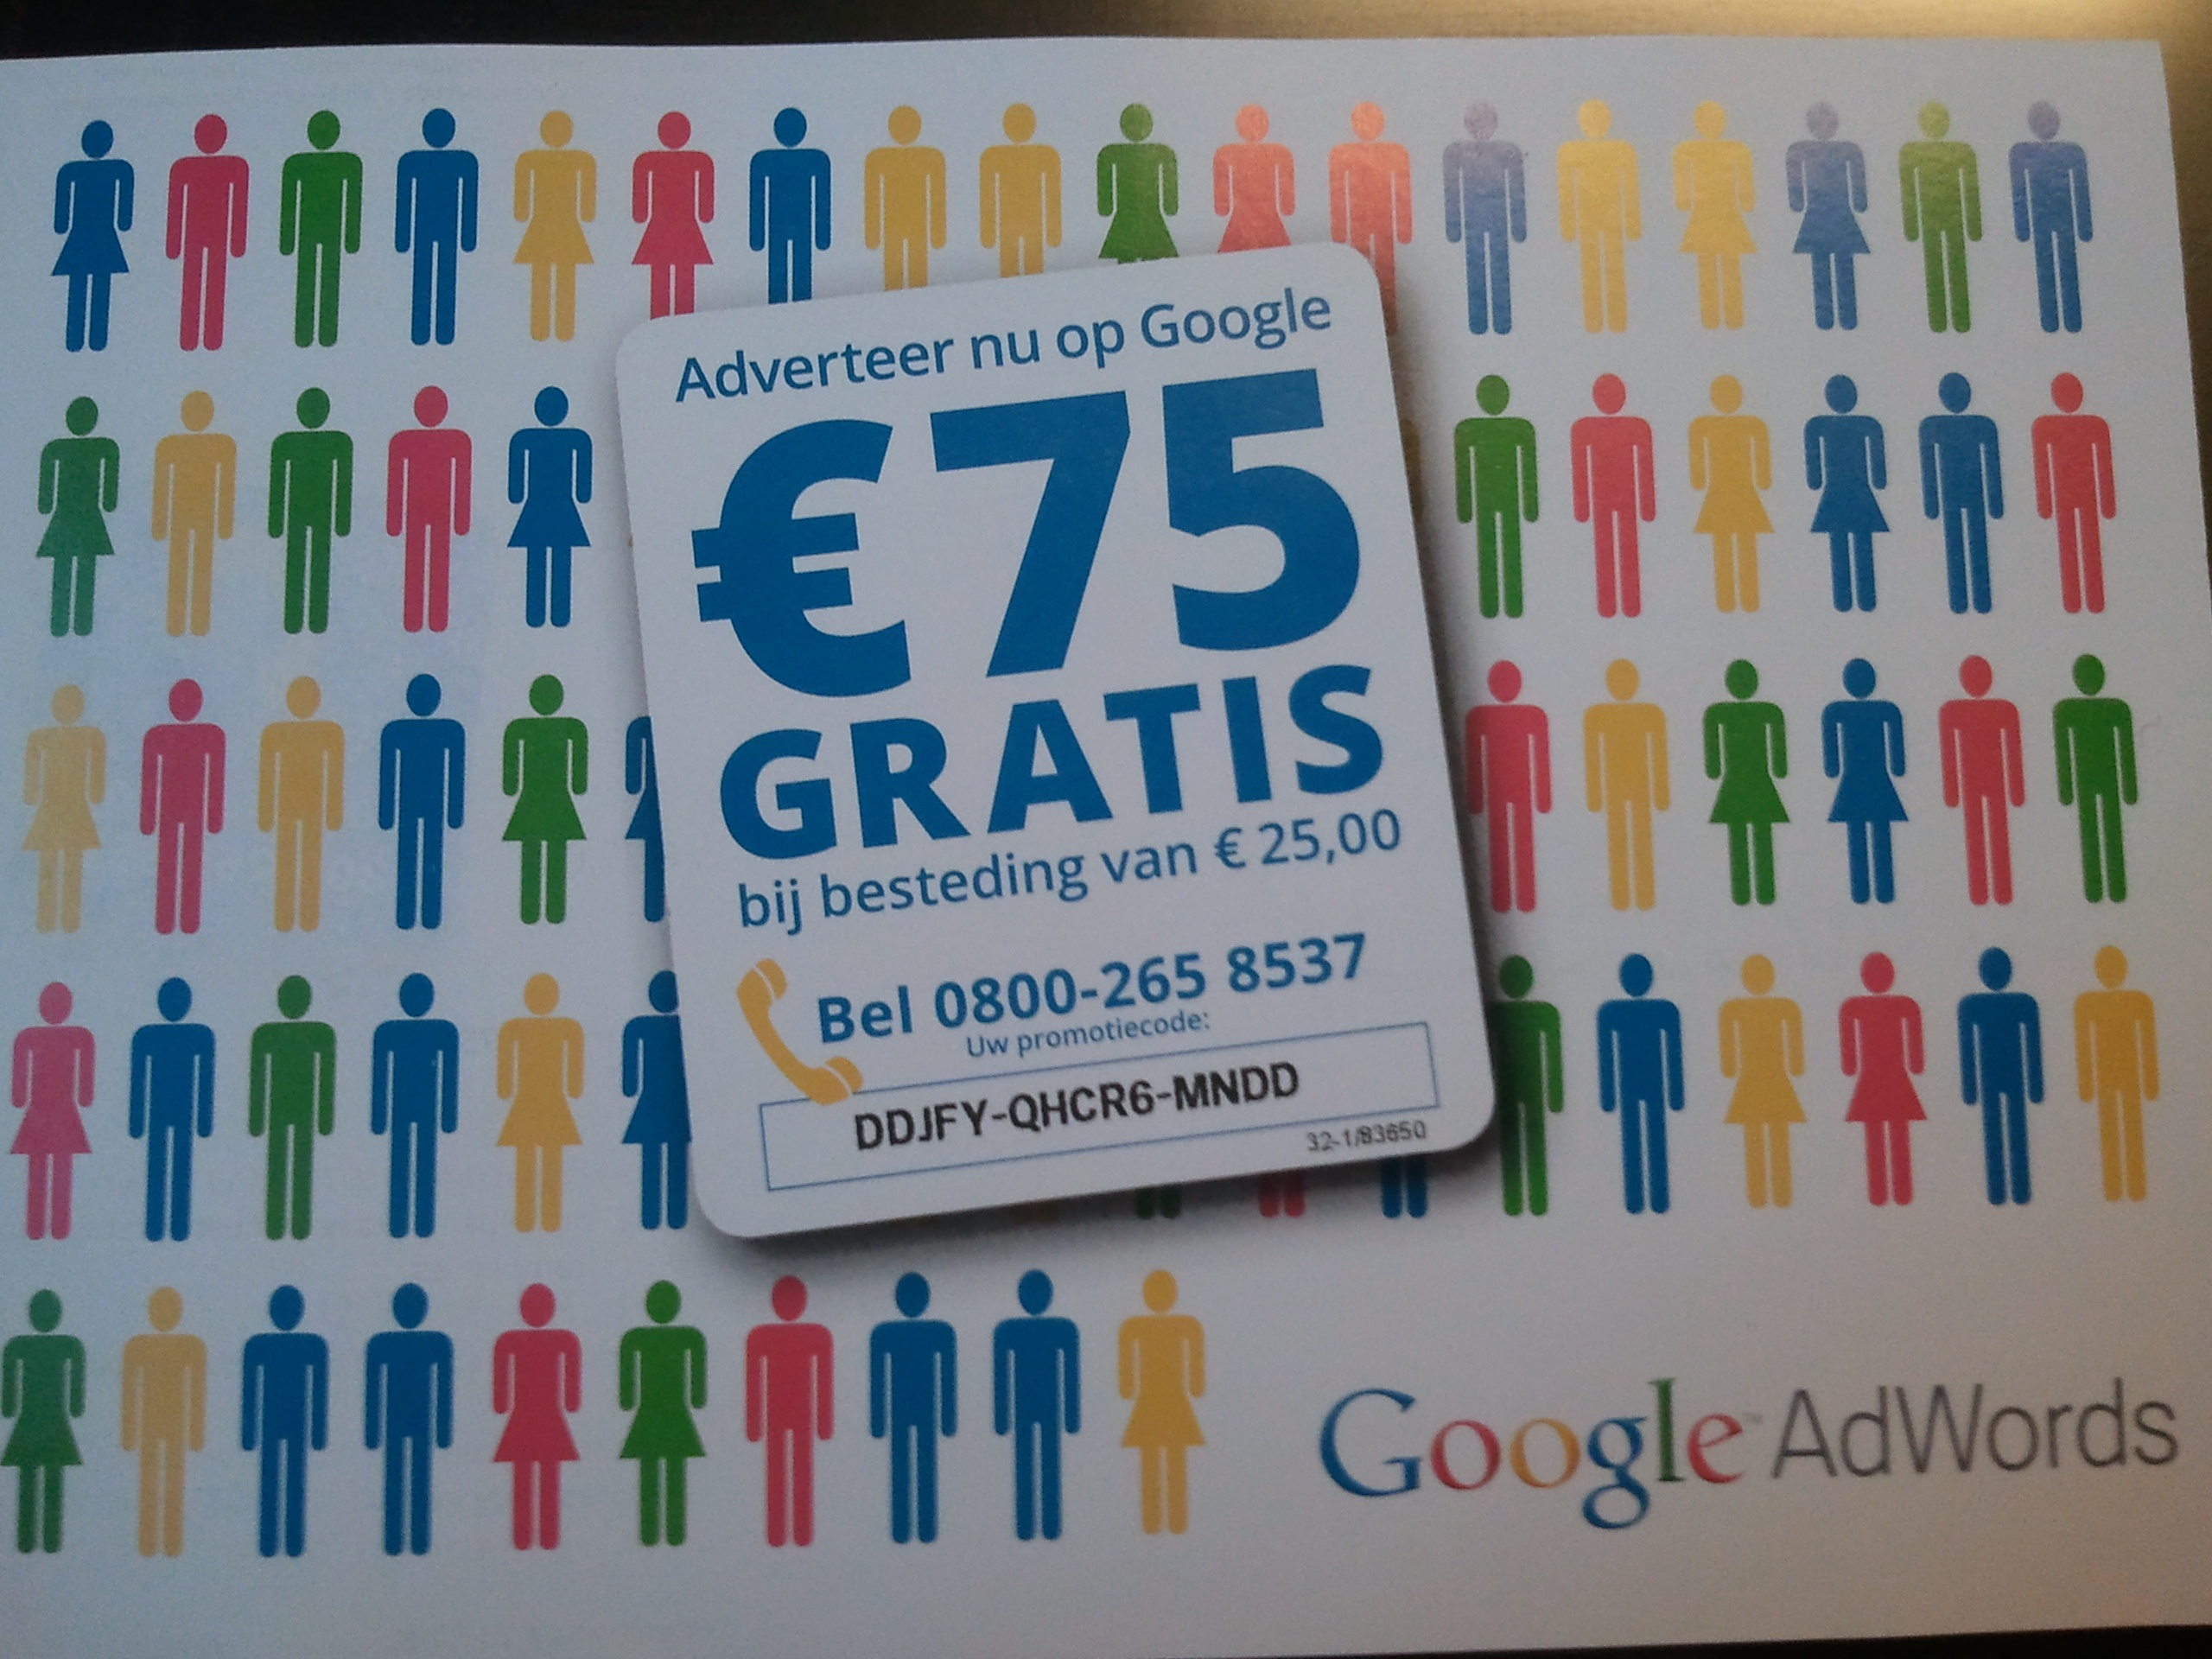 Google Adwords voor B2B